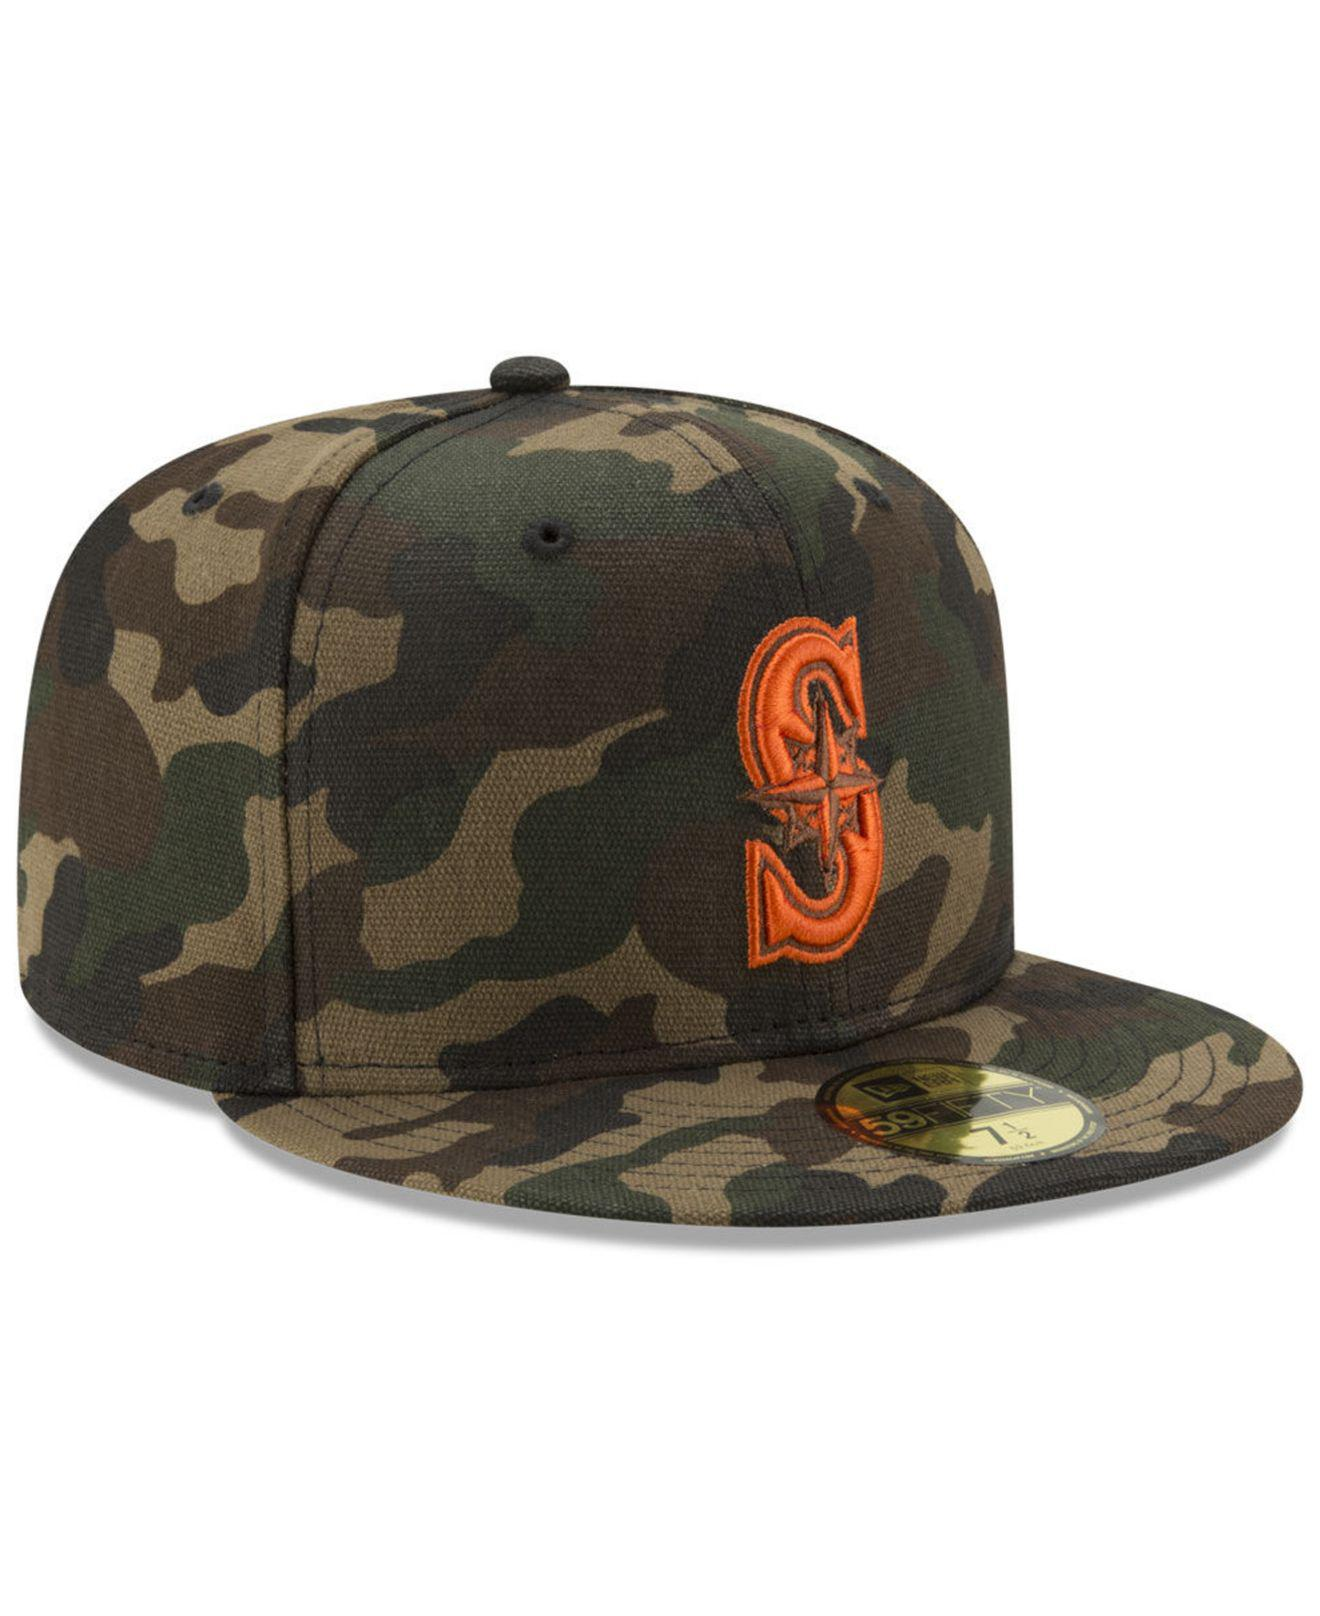 new product 6388c 307f4 Lyst - KTZ Camo On Canvas 59fifty Cap in Green for Men